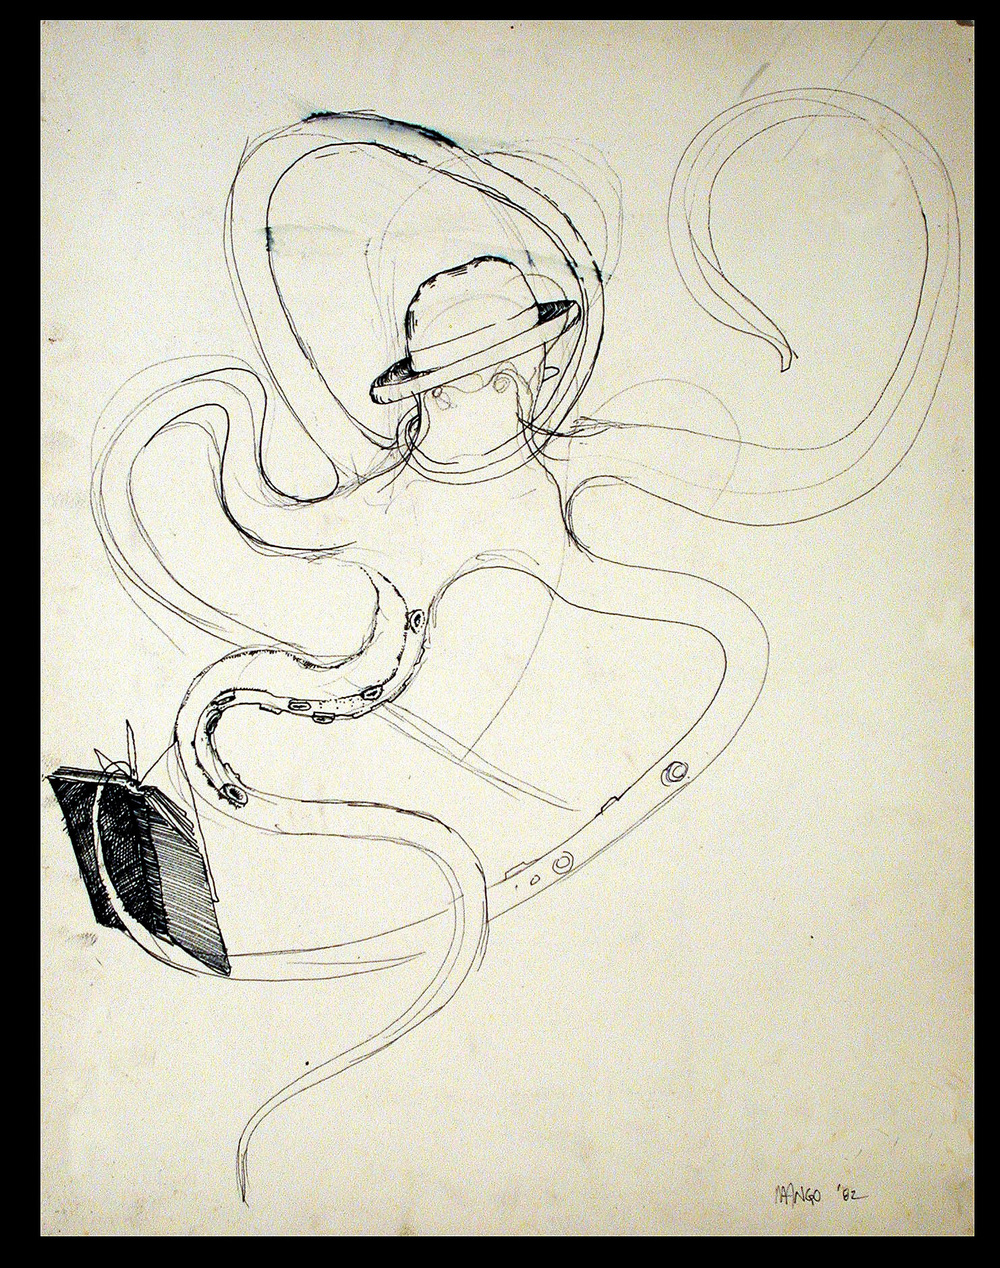 Study I  1983  Dry marker on paper  24x18 in.